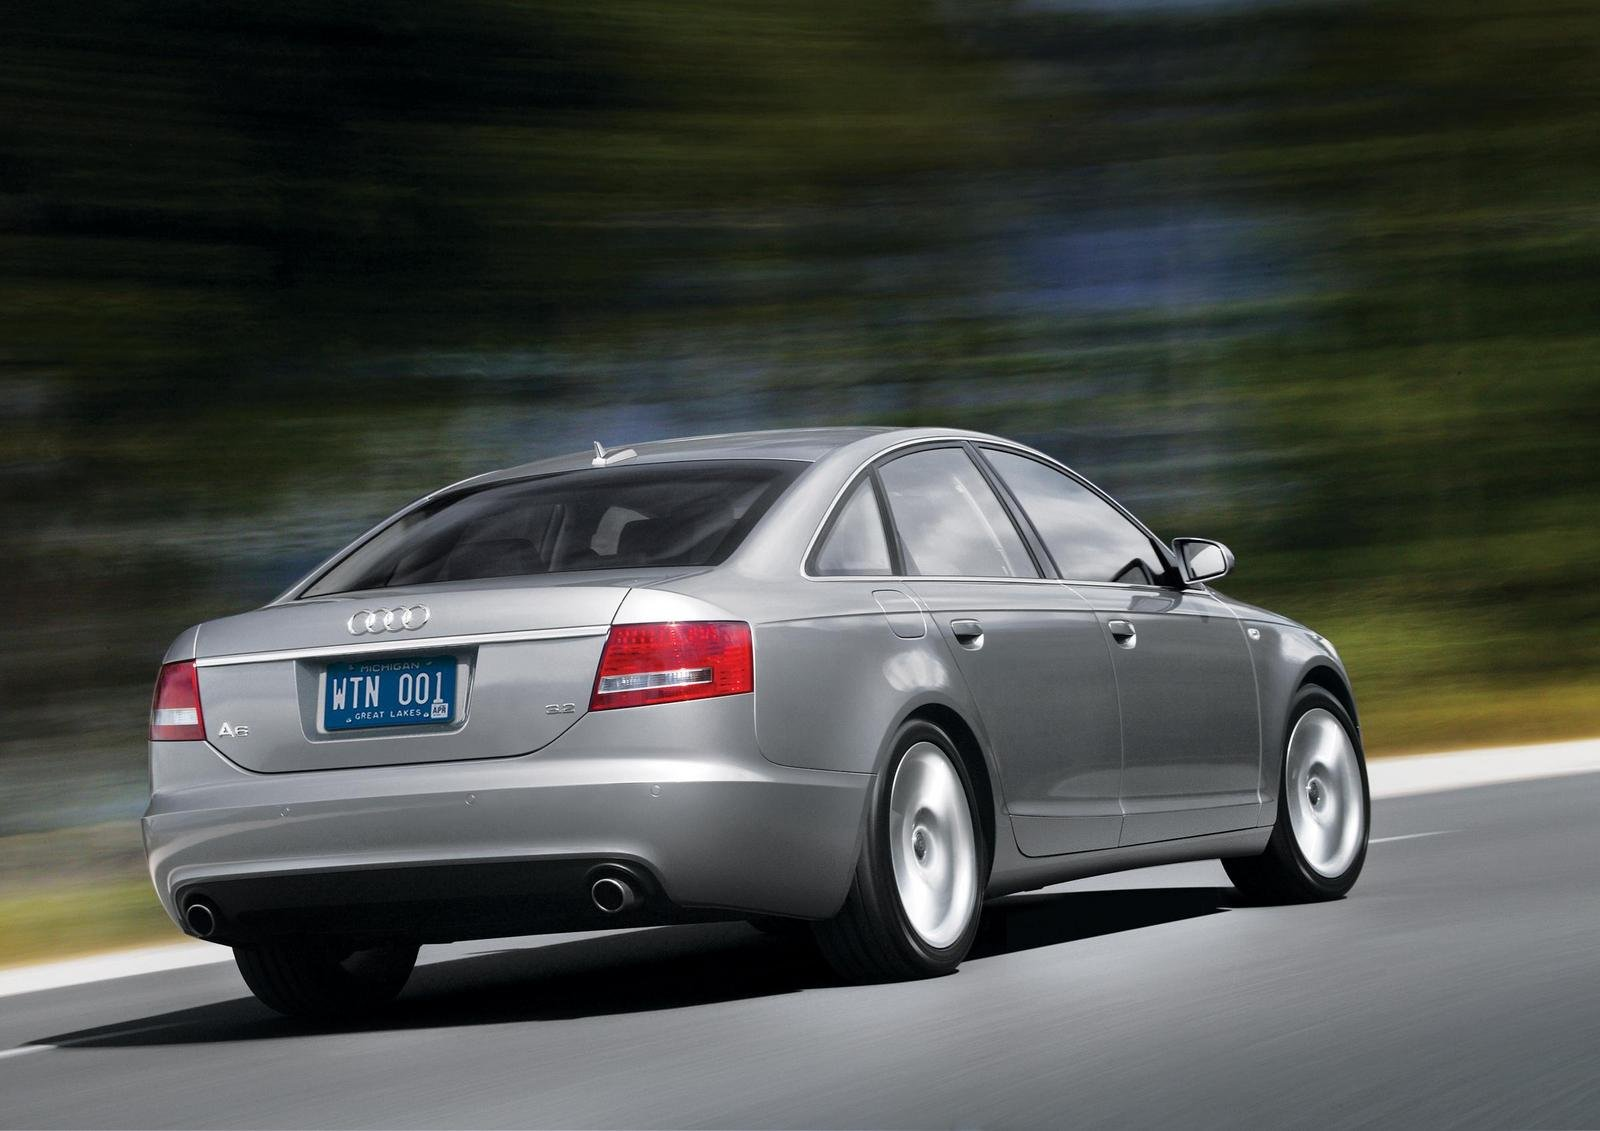 2007 audi a6 sedan picture 146514 car review top speed. Black Bedroom Furniture Sets. Home Design Ideas